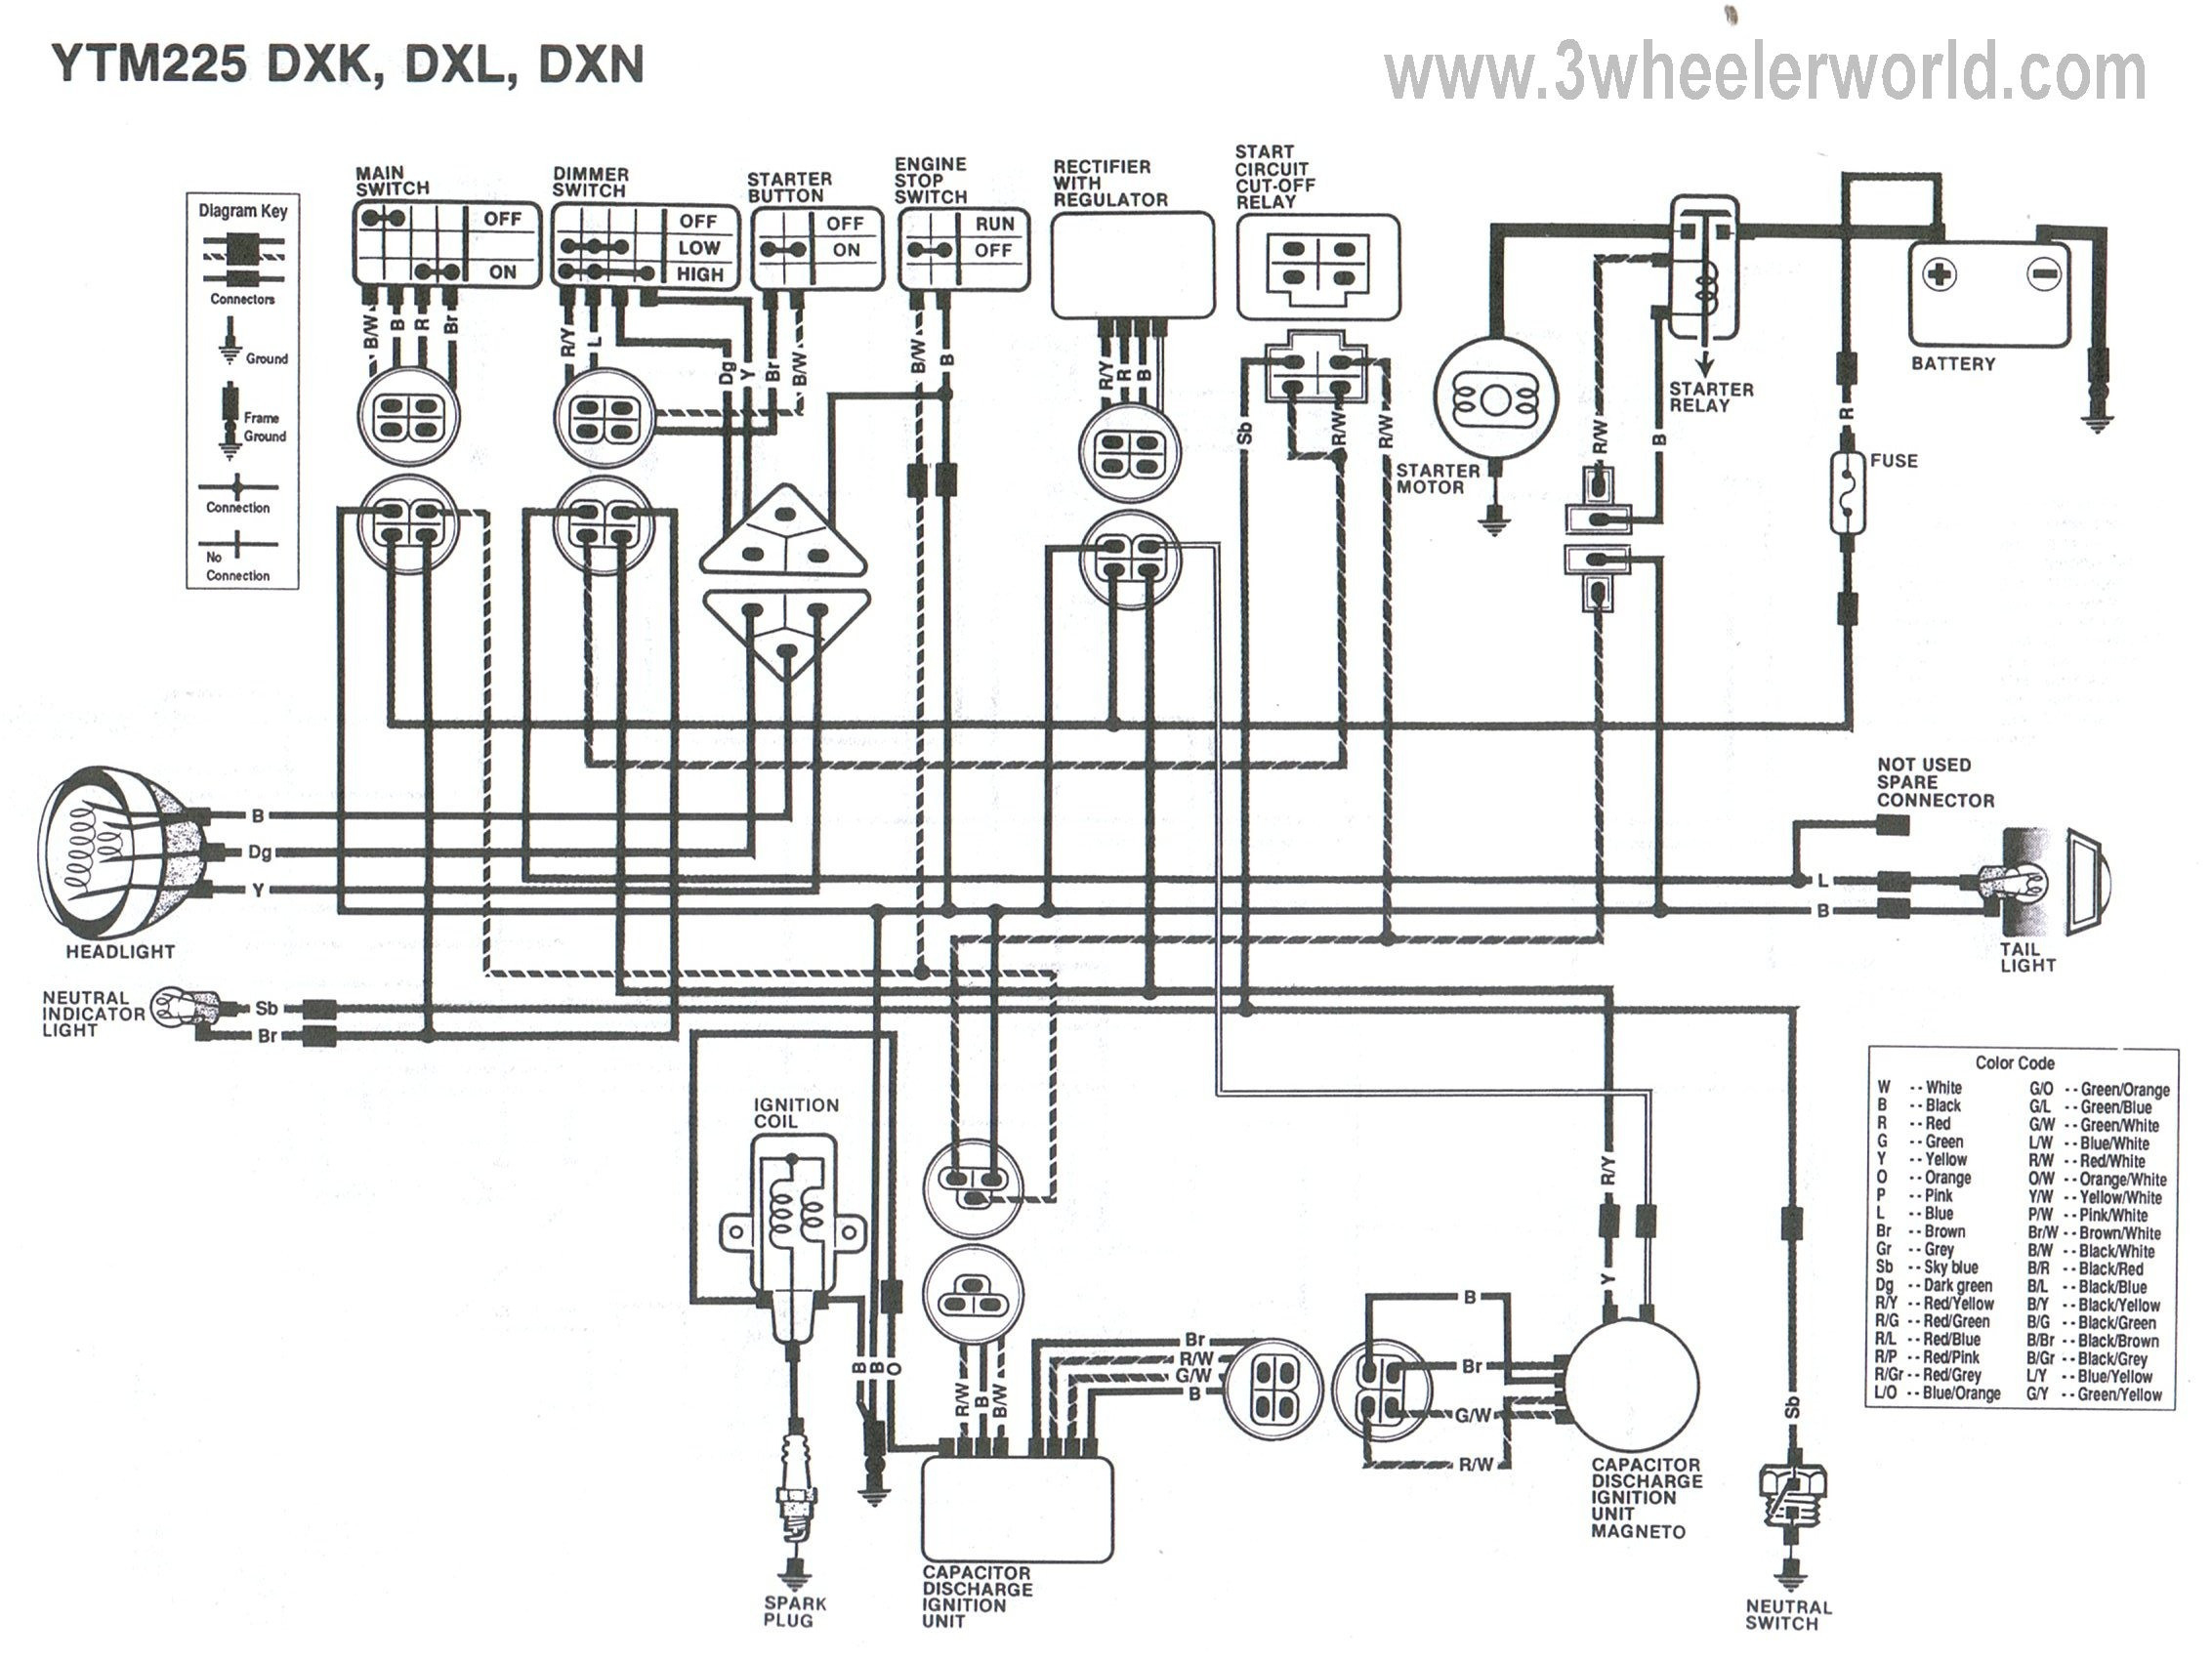 xsvi 6502 nav wiring diagram Download-Motorcycle Wiring Diagram Unique  Yamaha Timberwolf 20 11-. DOWNLOAD. Wiring Diagram ...